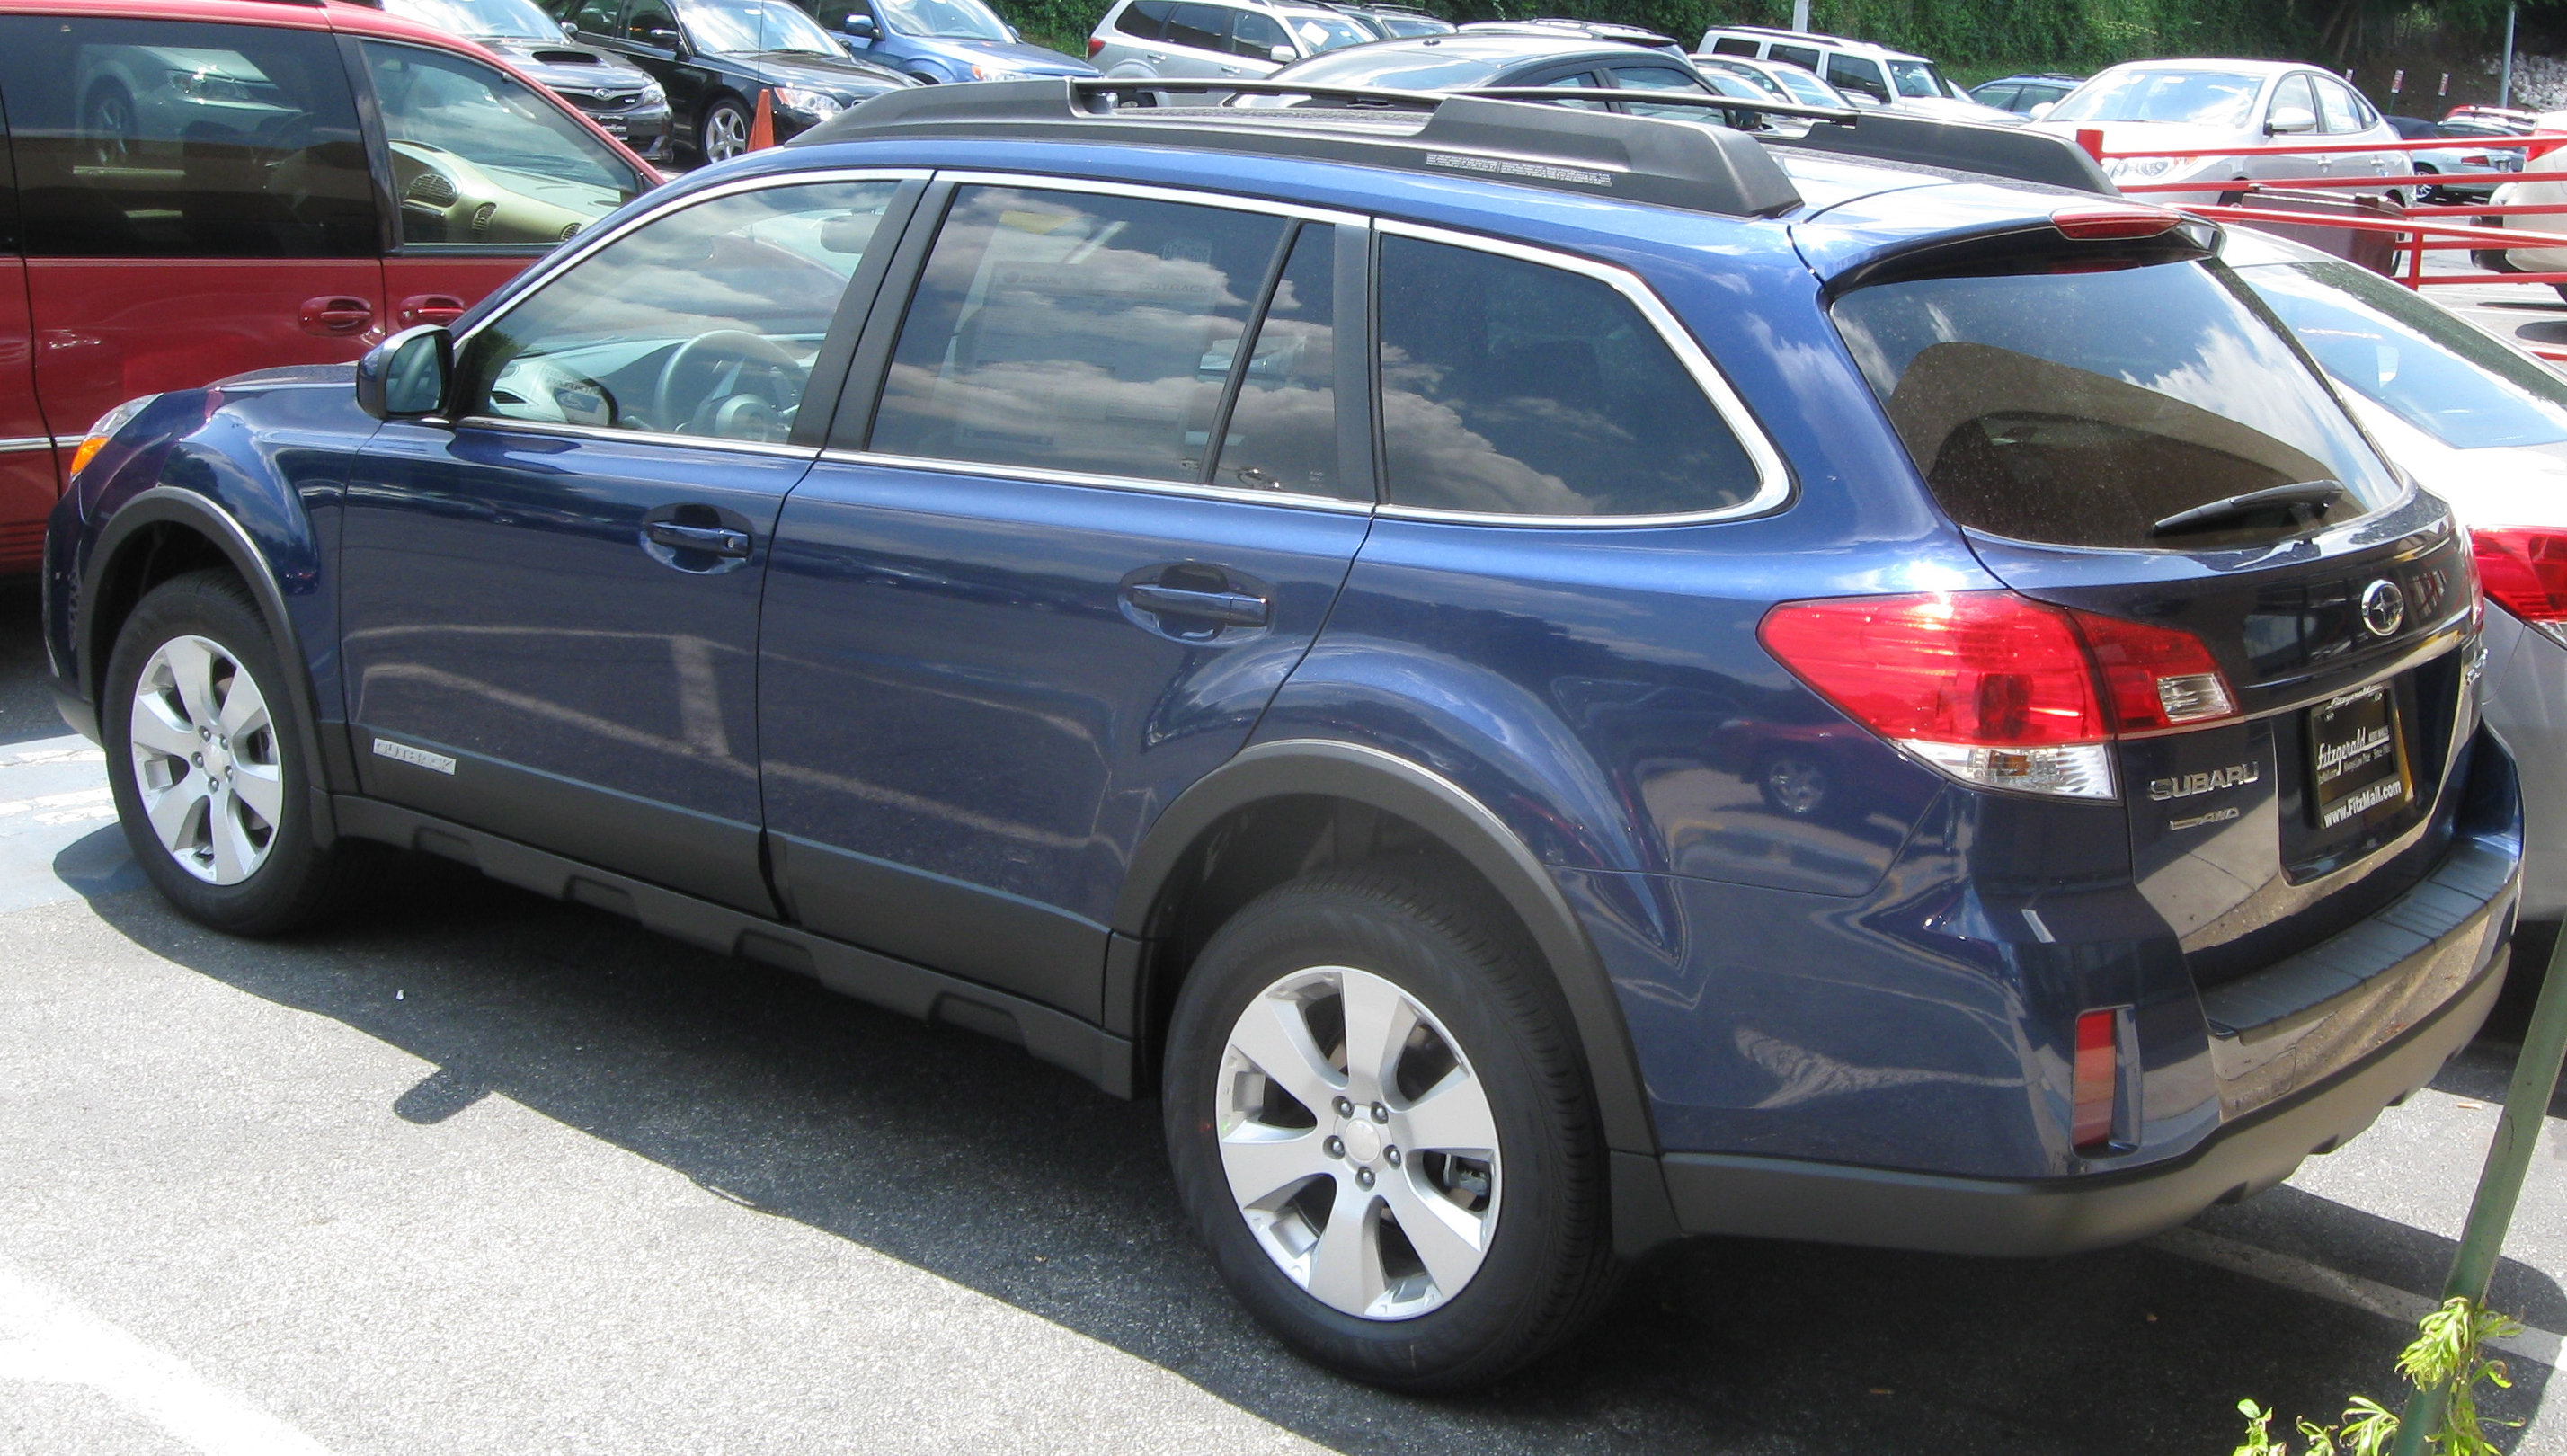 2009 Subaru Outback Research site